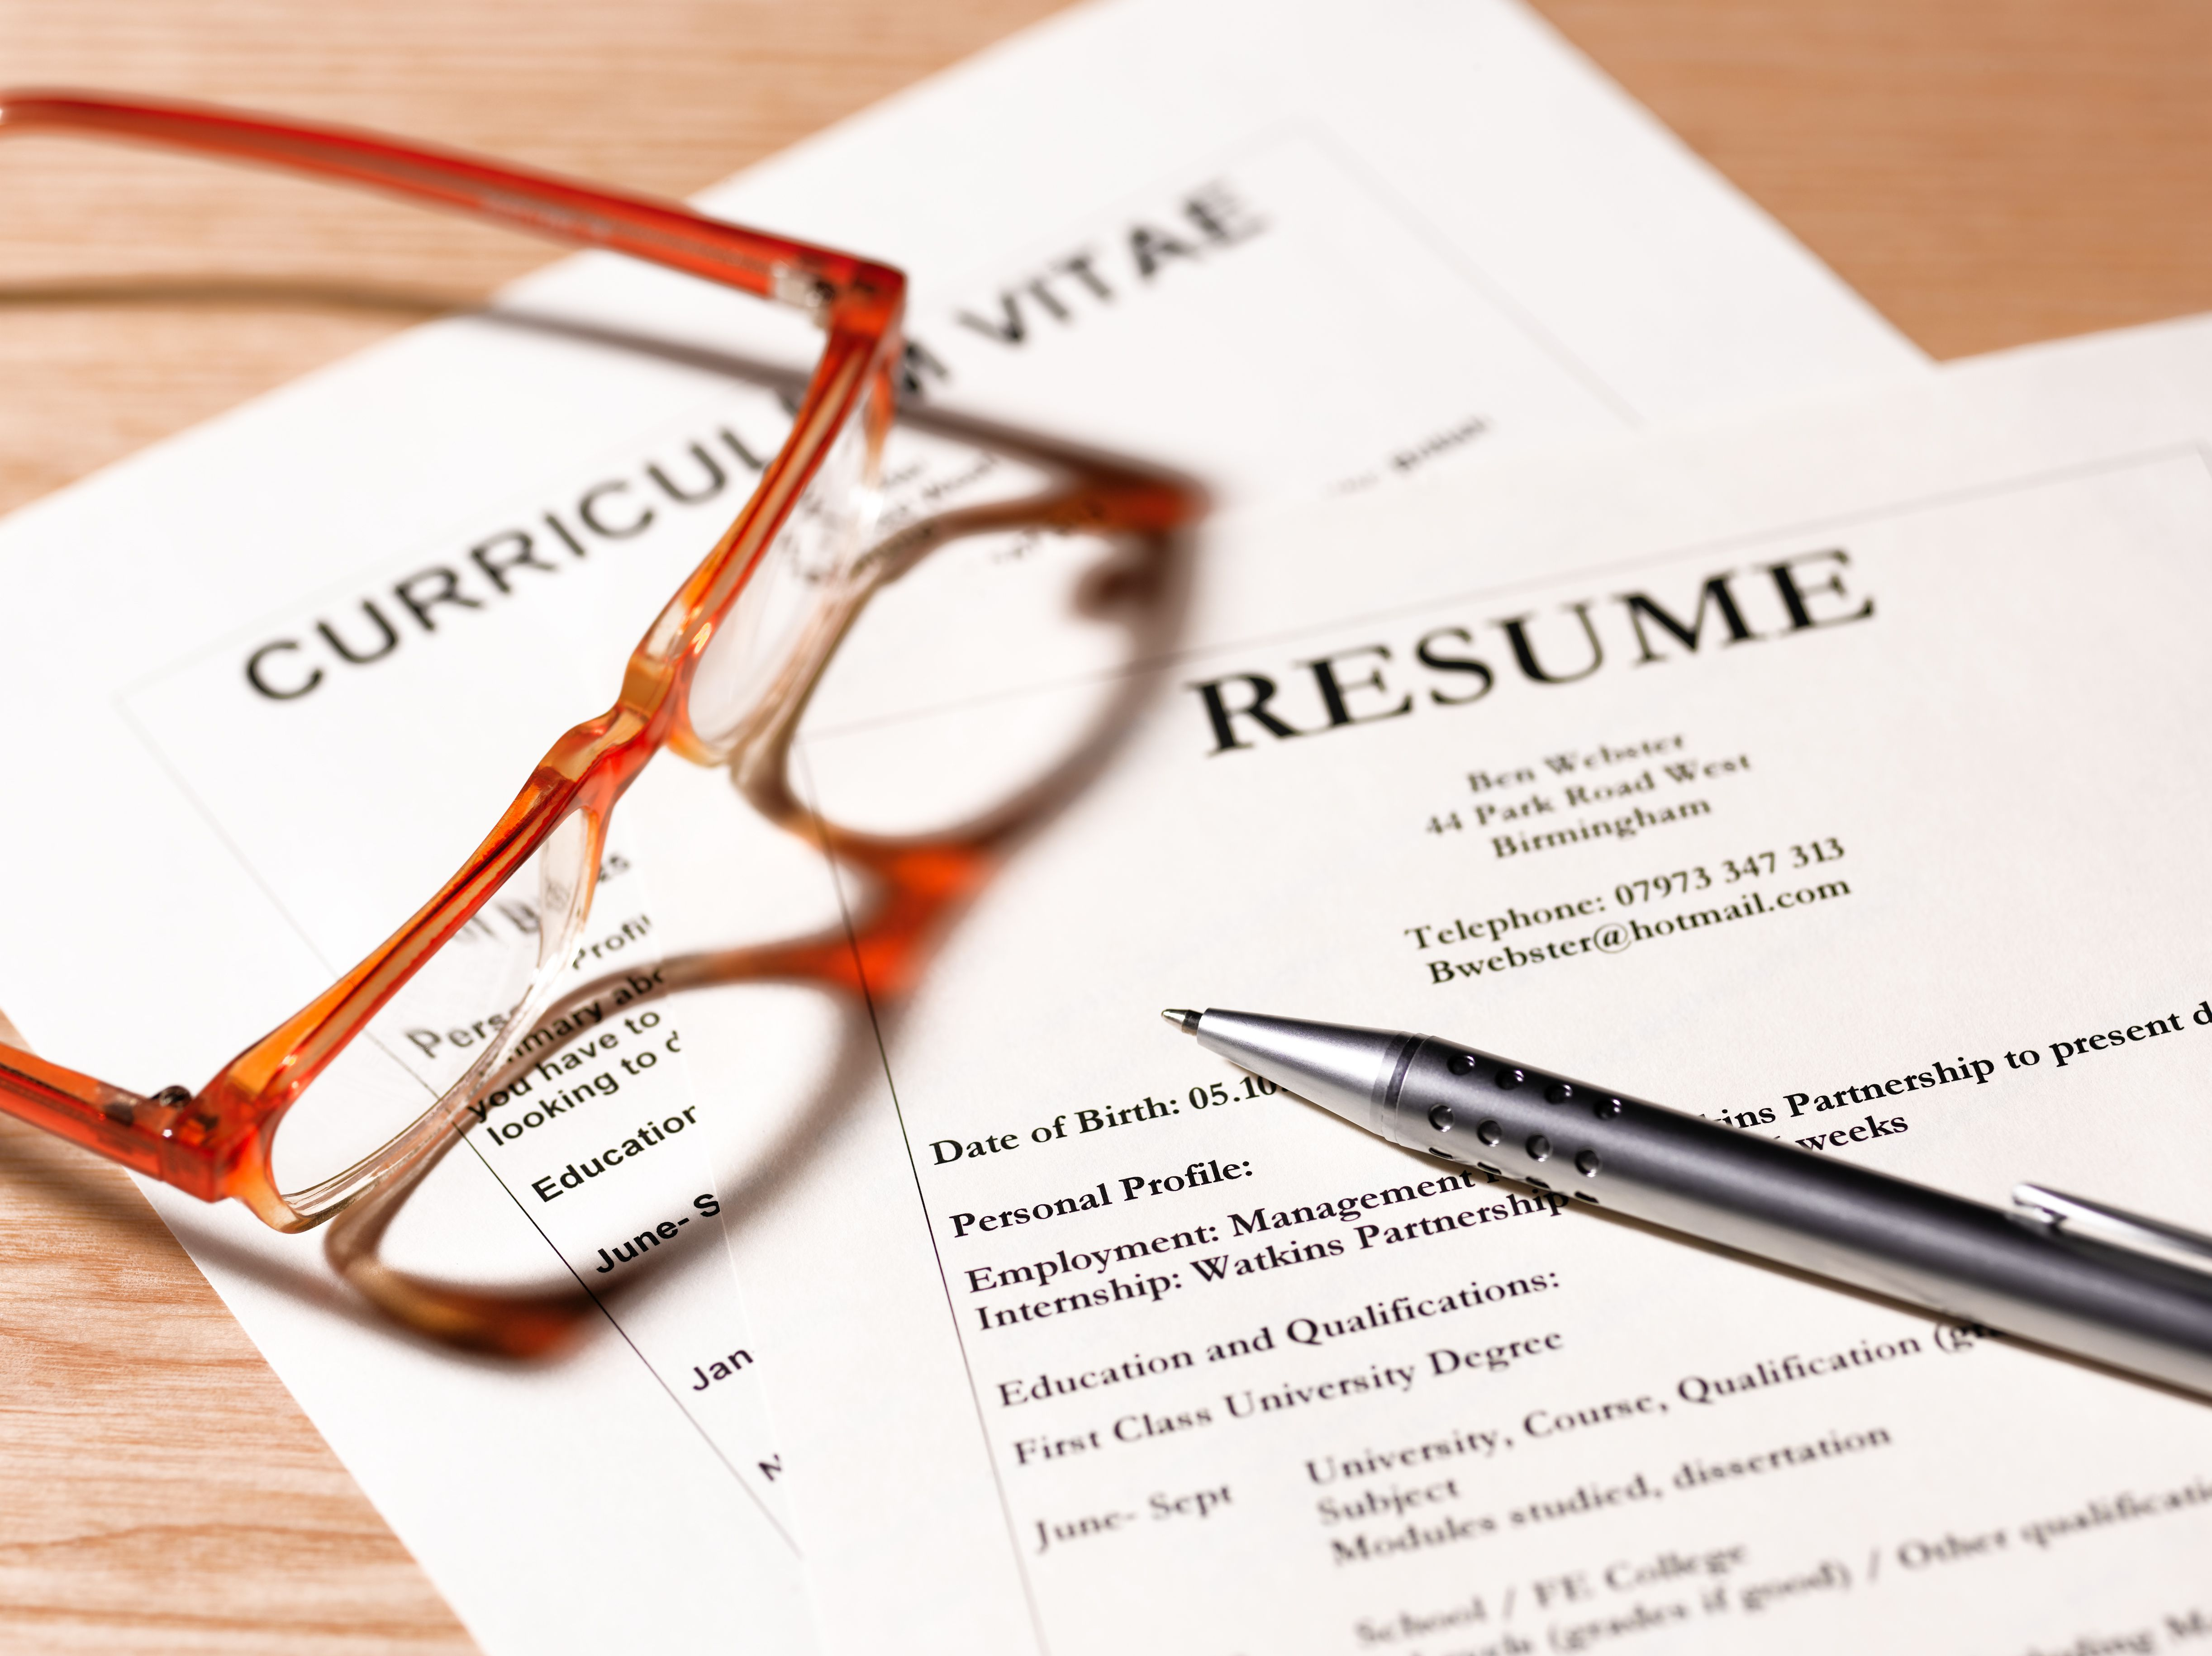 Top 12 Tips for Writing a Great Resume